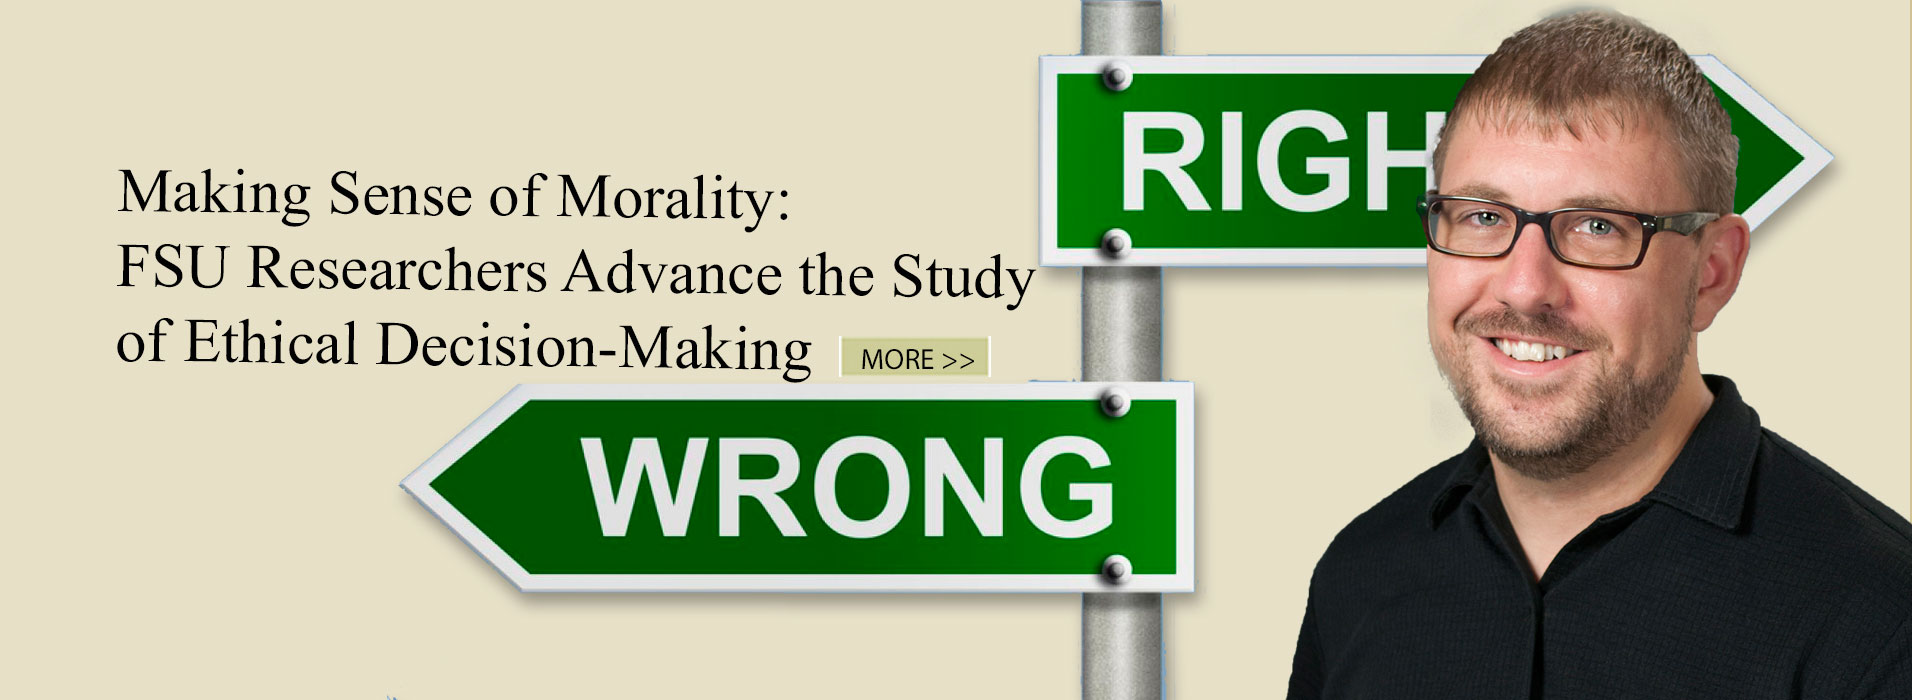 Making Sense of Morality: FSU Researchers Advance the Study of Ethical Decision-Making